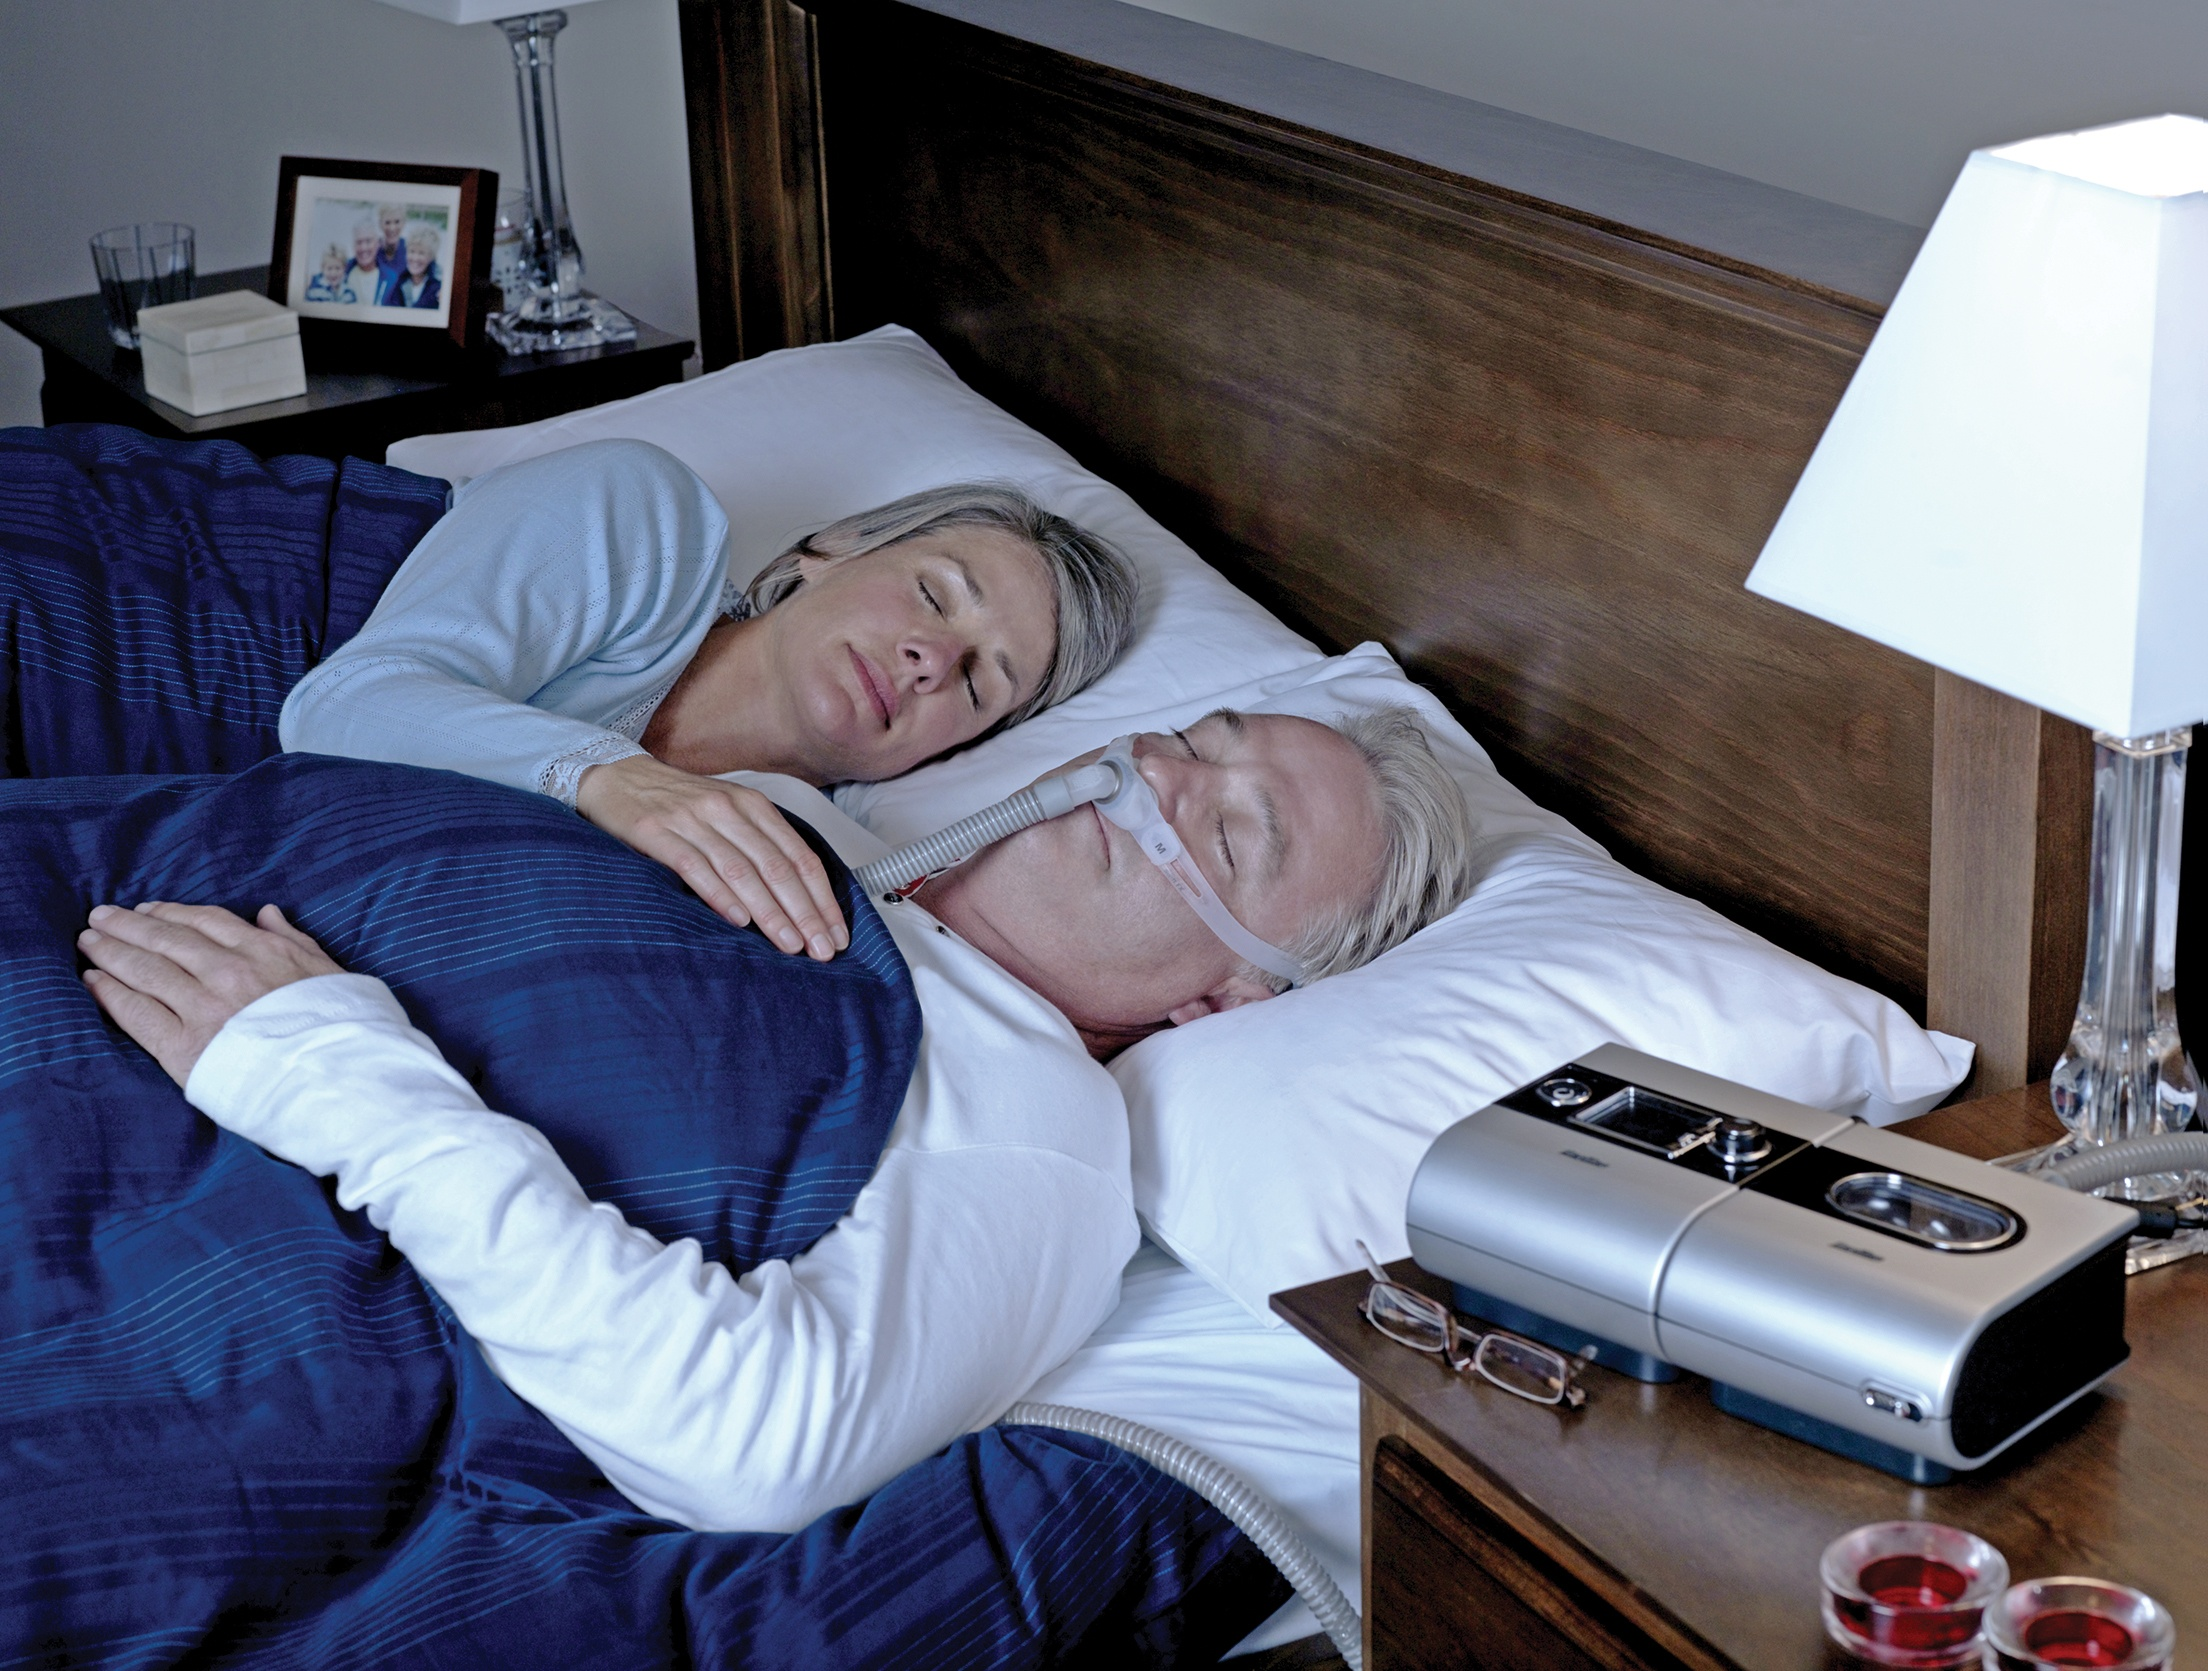 sleeping_couple-S9-SwiftFX.jpg